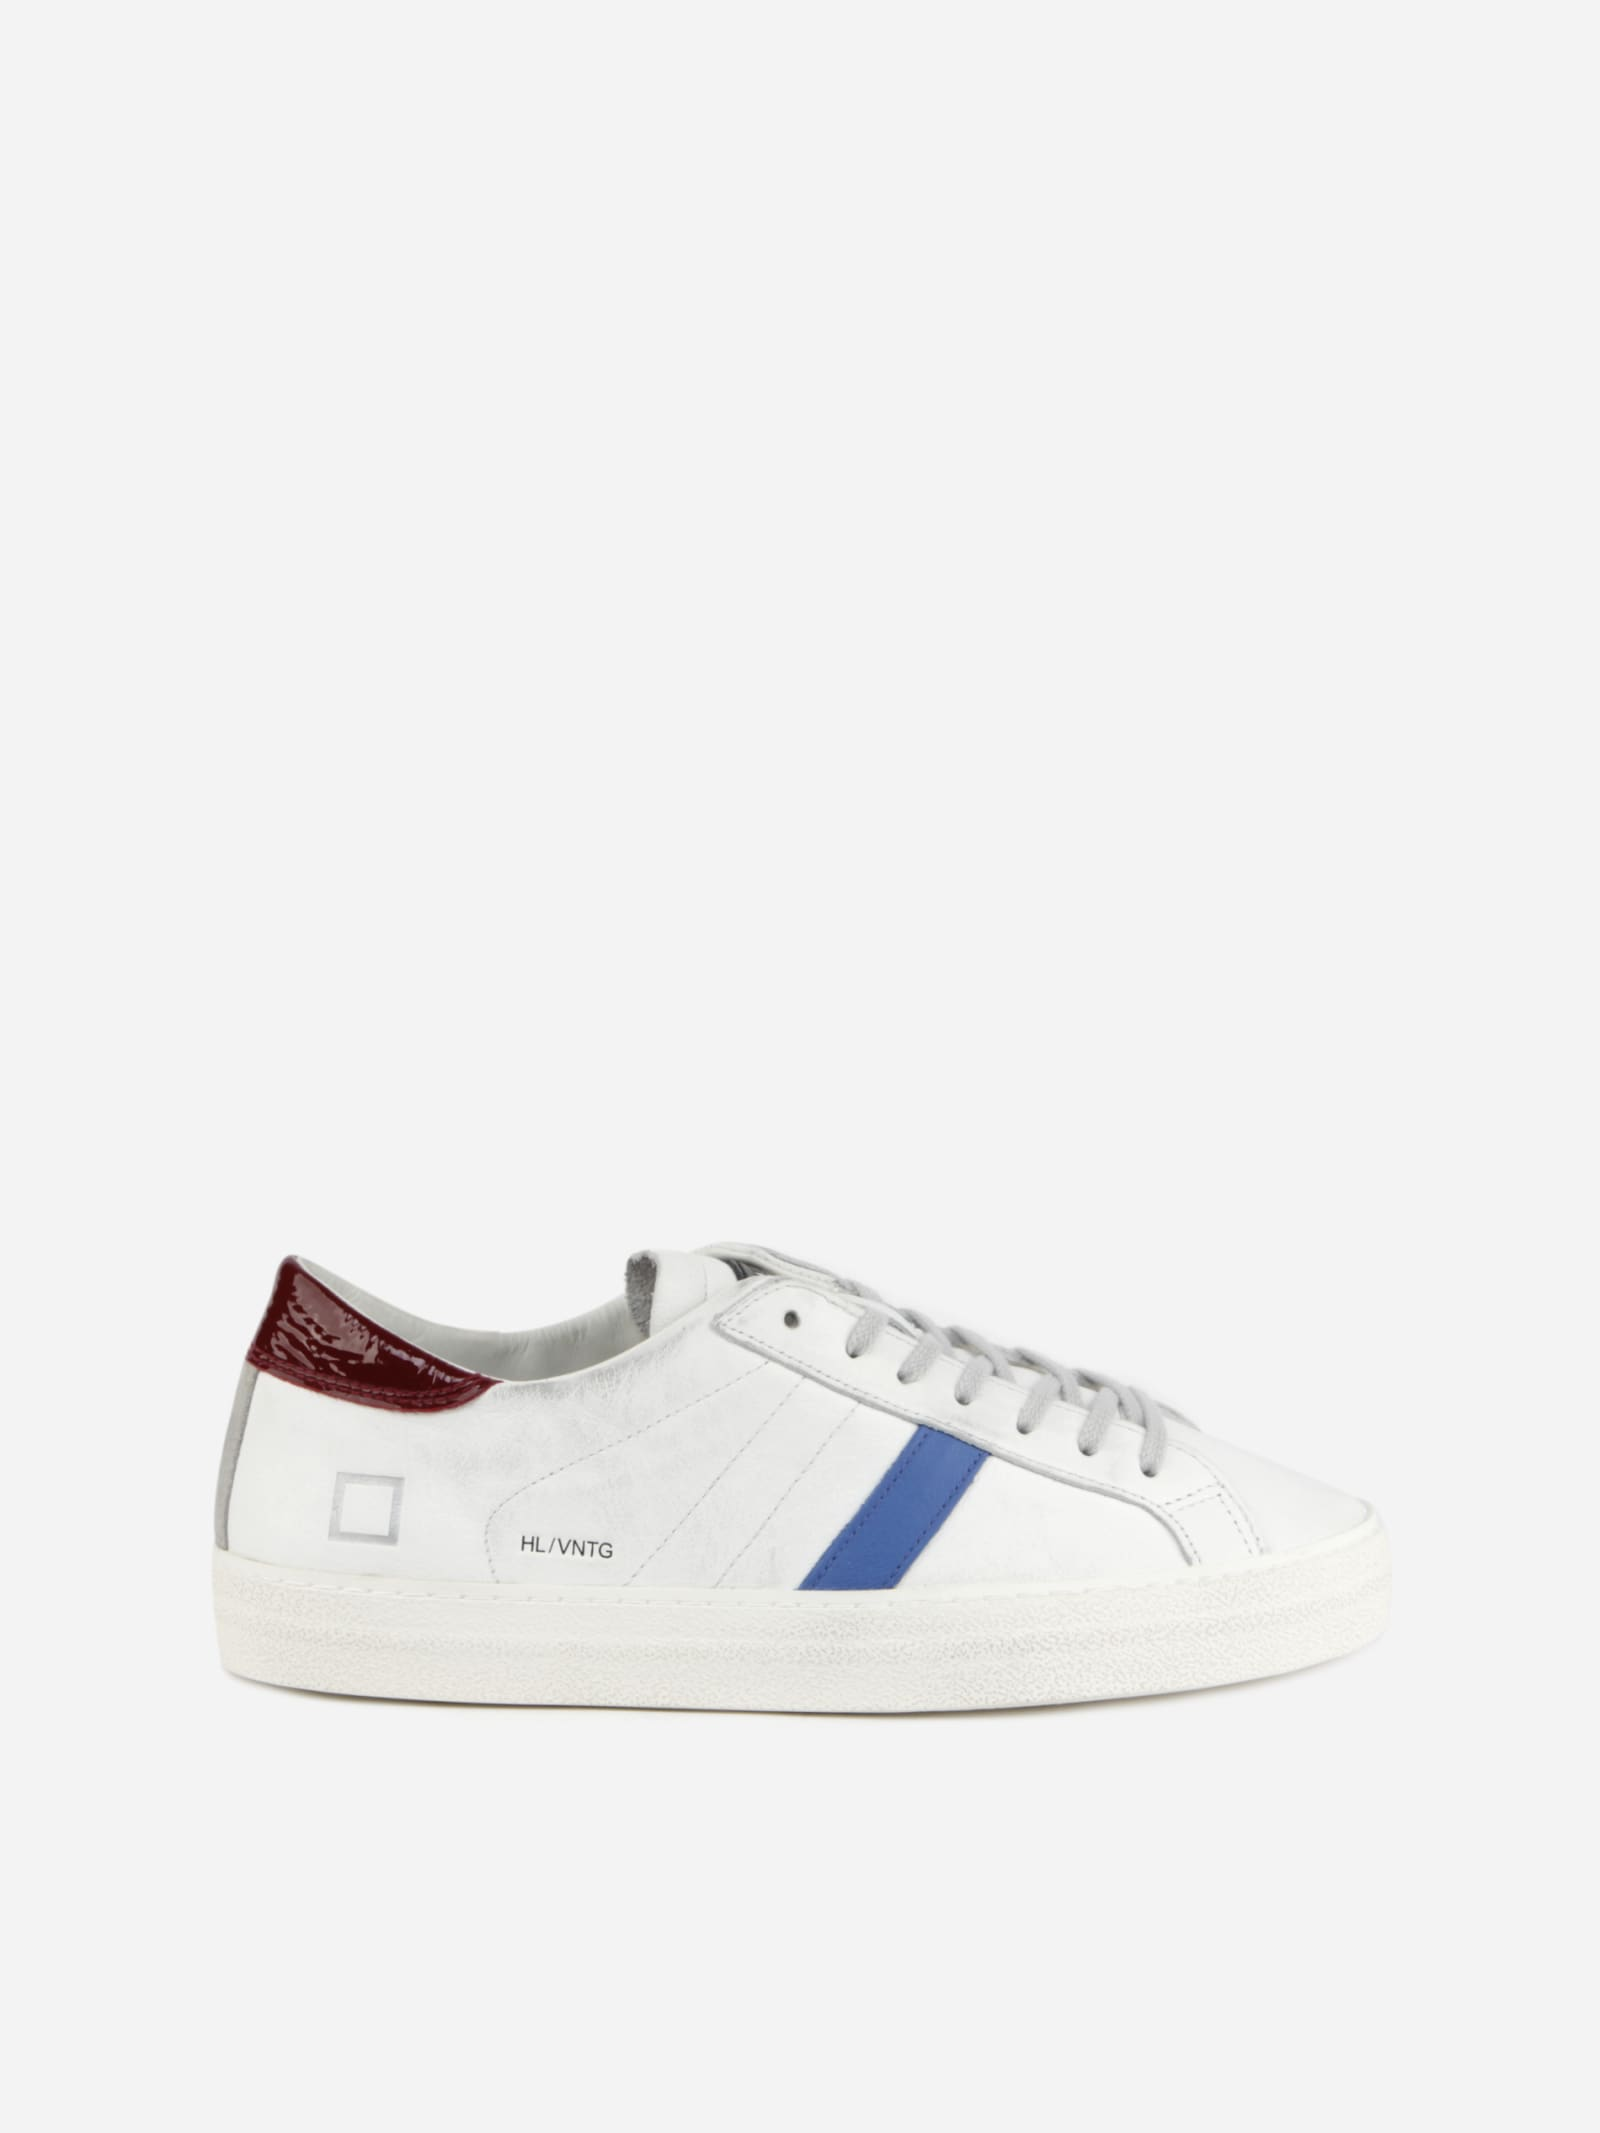 D.a.t.e. Leathers HILL LOW SNEAKERS IN LEATHER